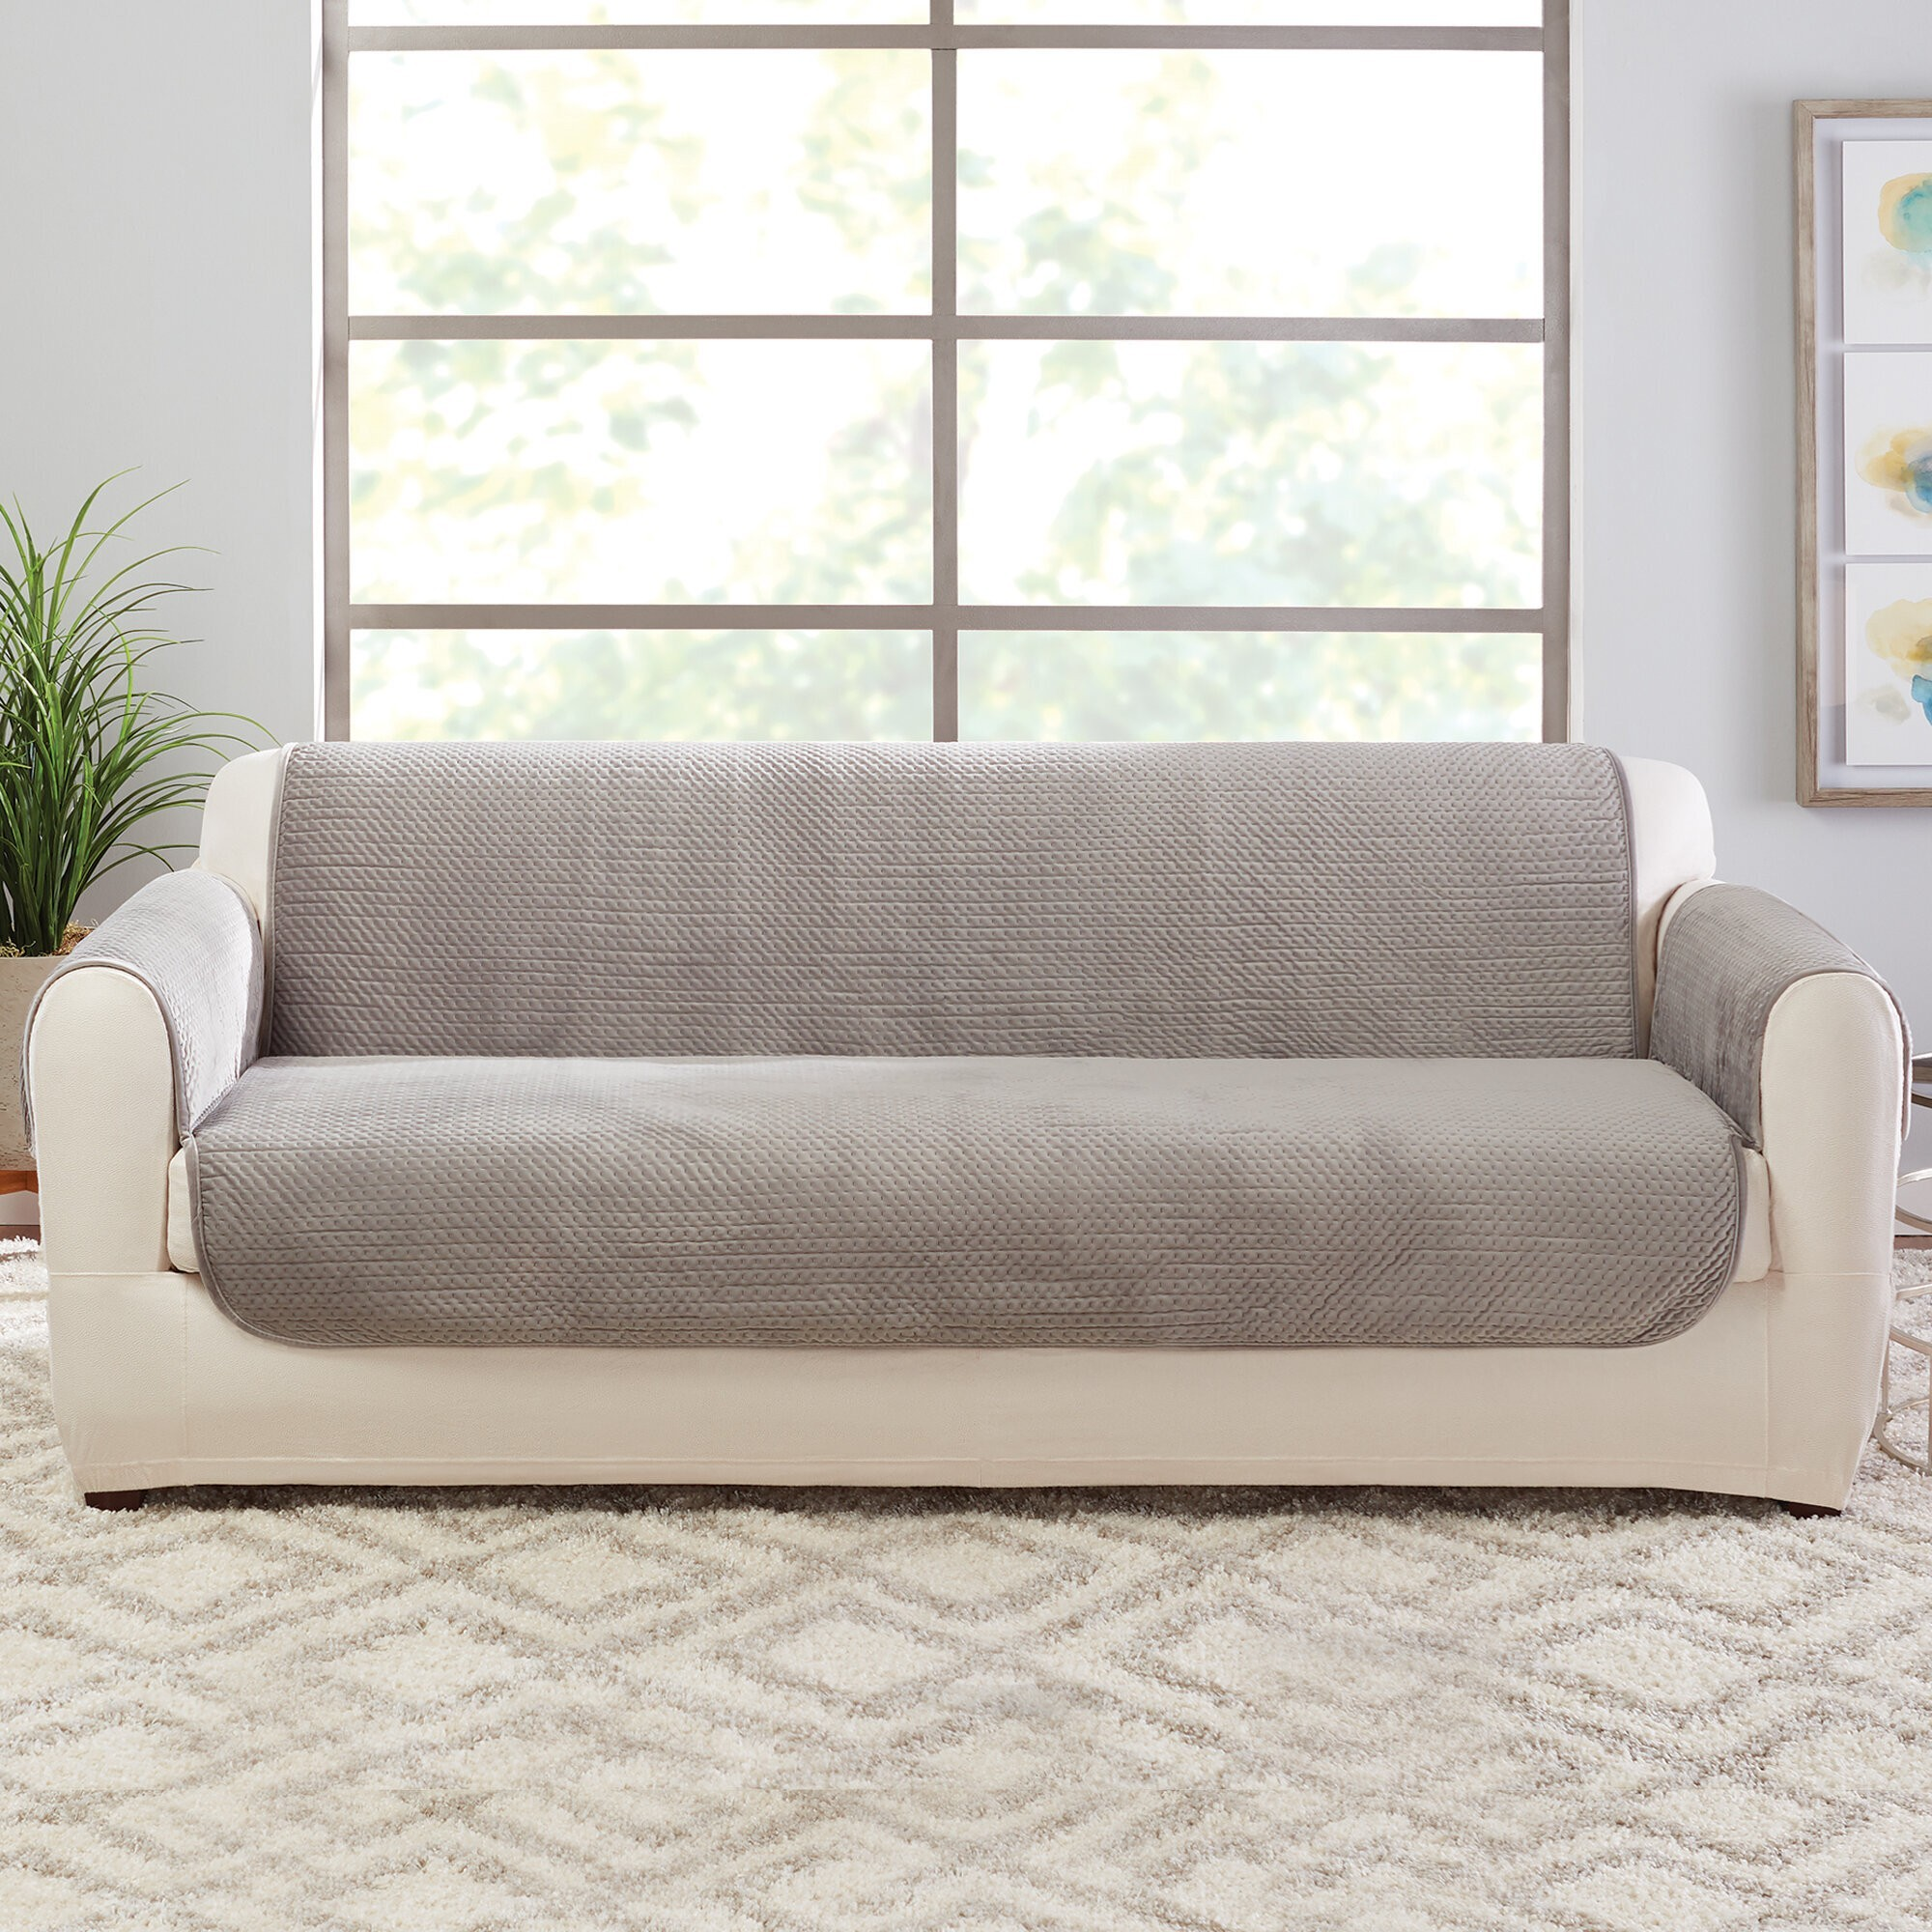 How To Choose A Sofa Slipcover